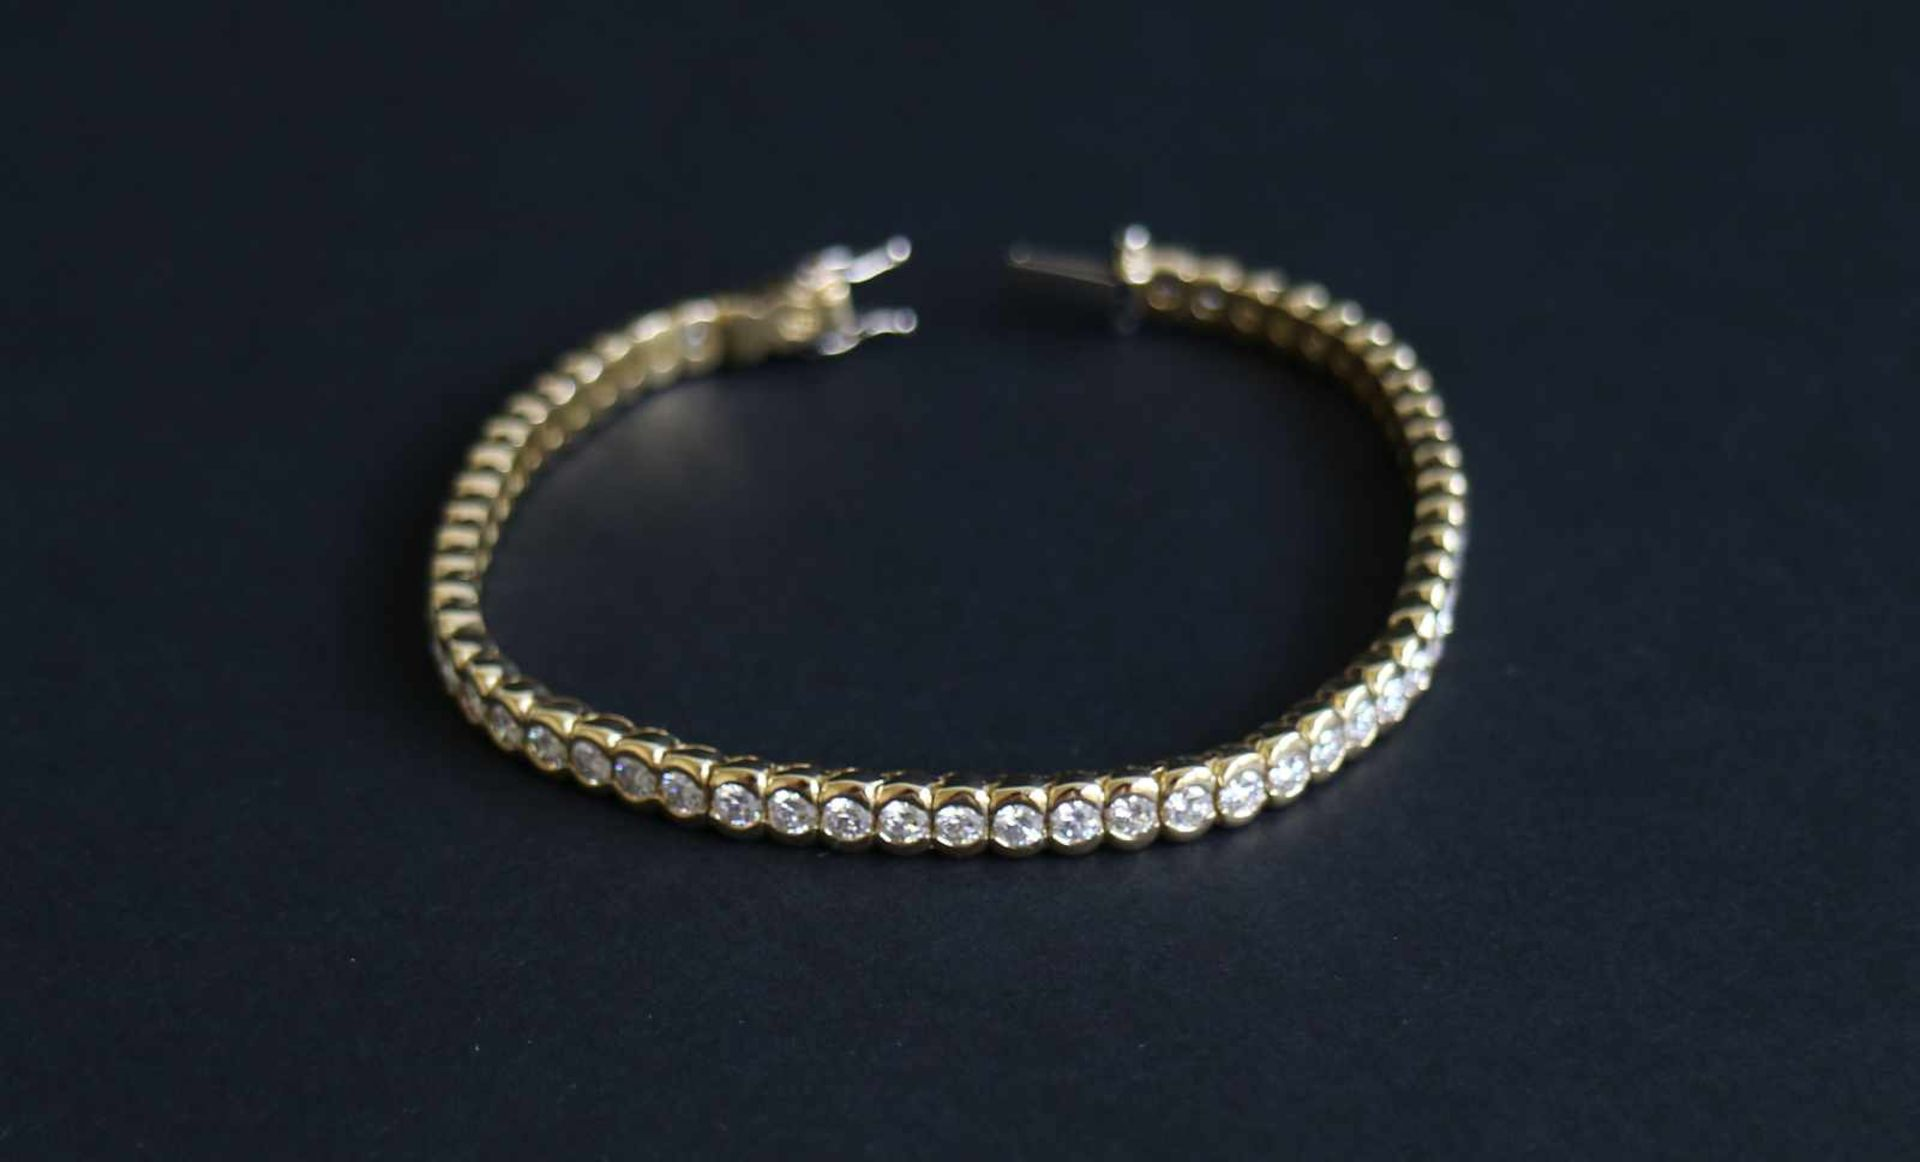 Los 945 - Bracelet Riviere with brilliant gold 22 gr 18 Kt, 56 x brilliant for 4.36 Kt, quality VVS / F